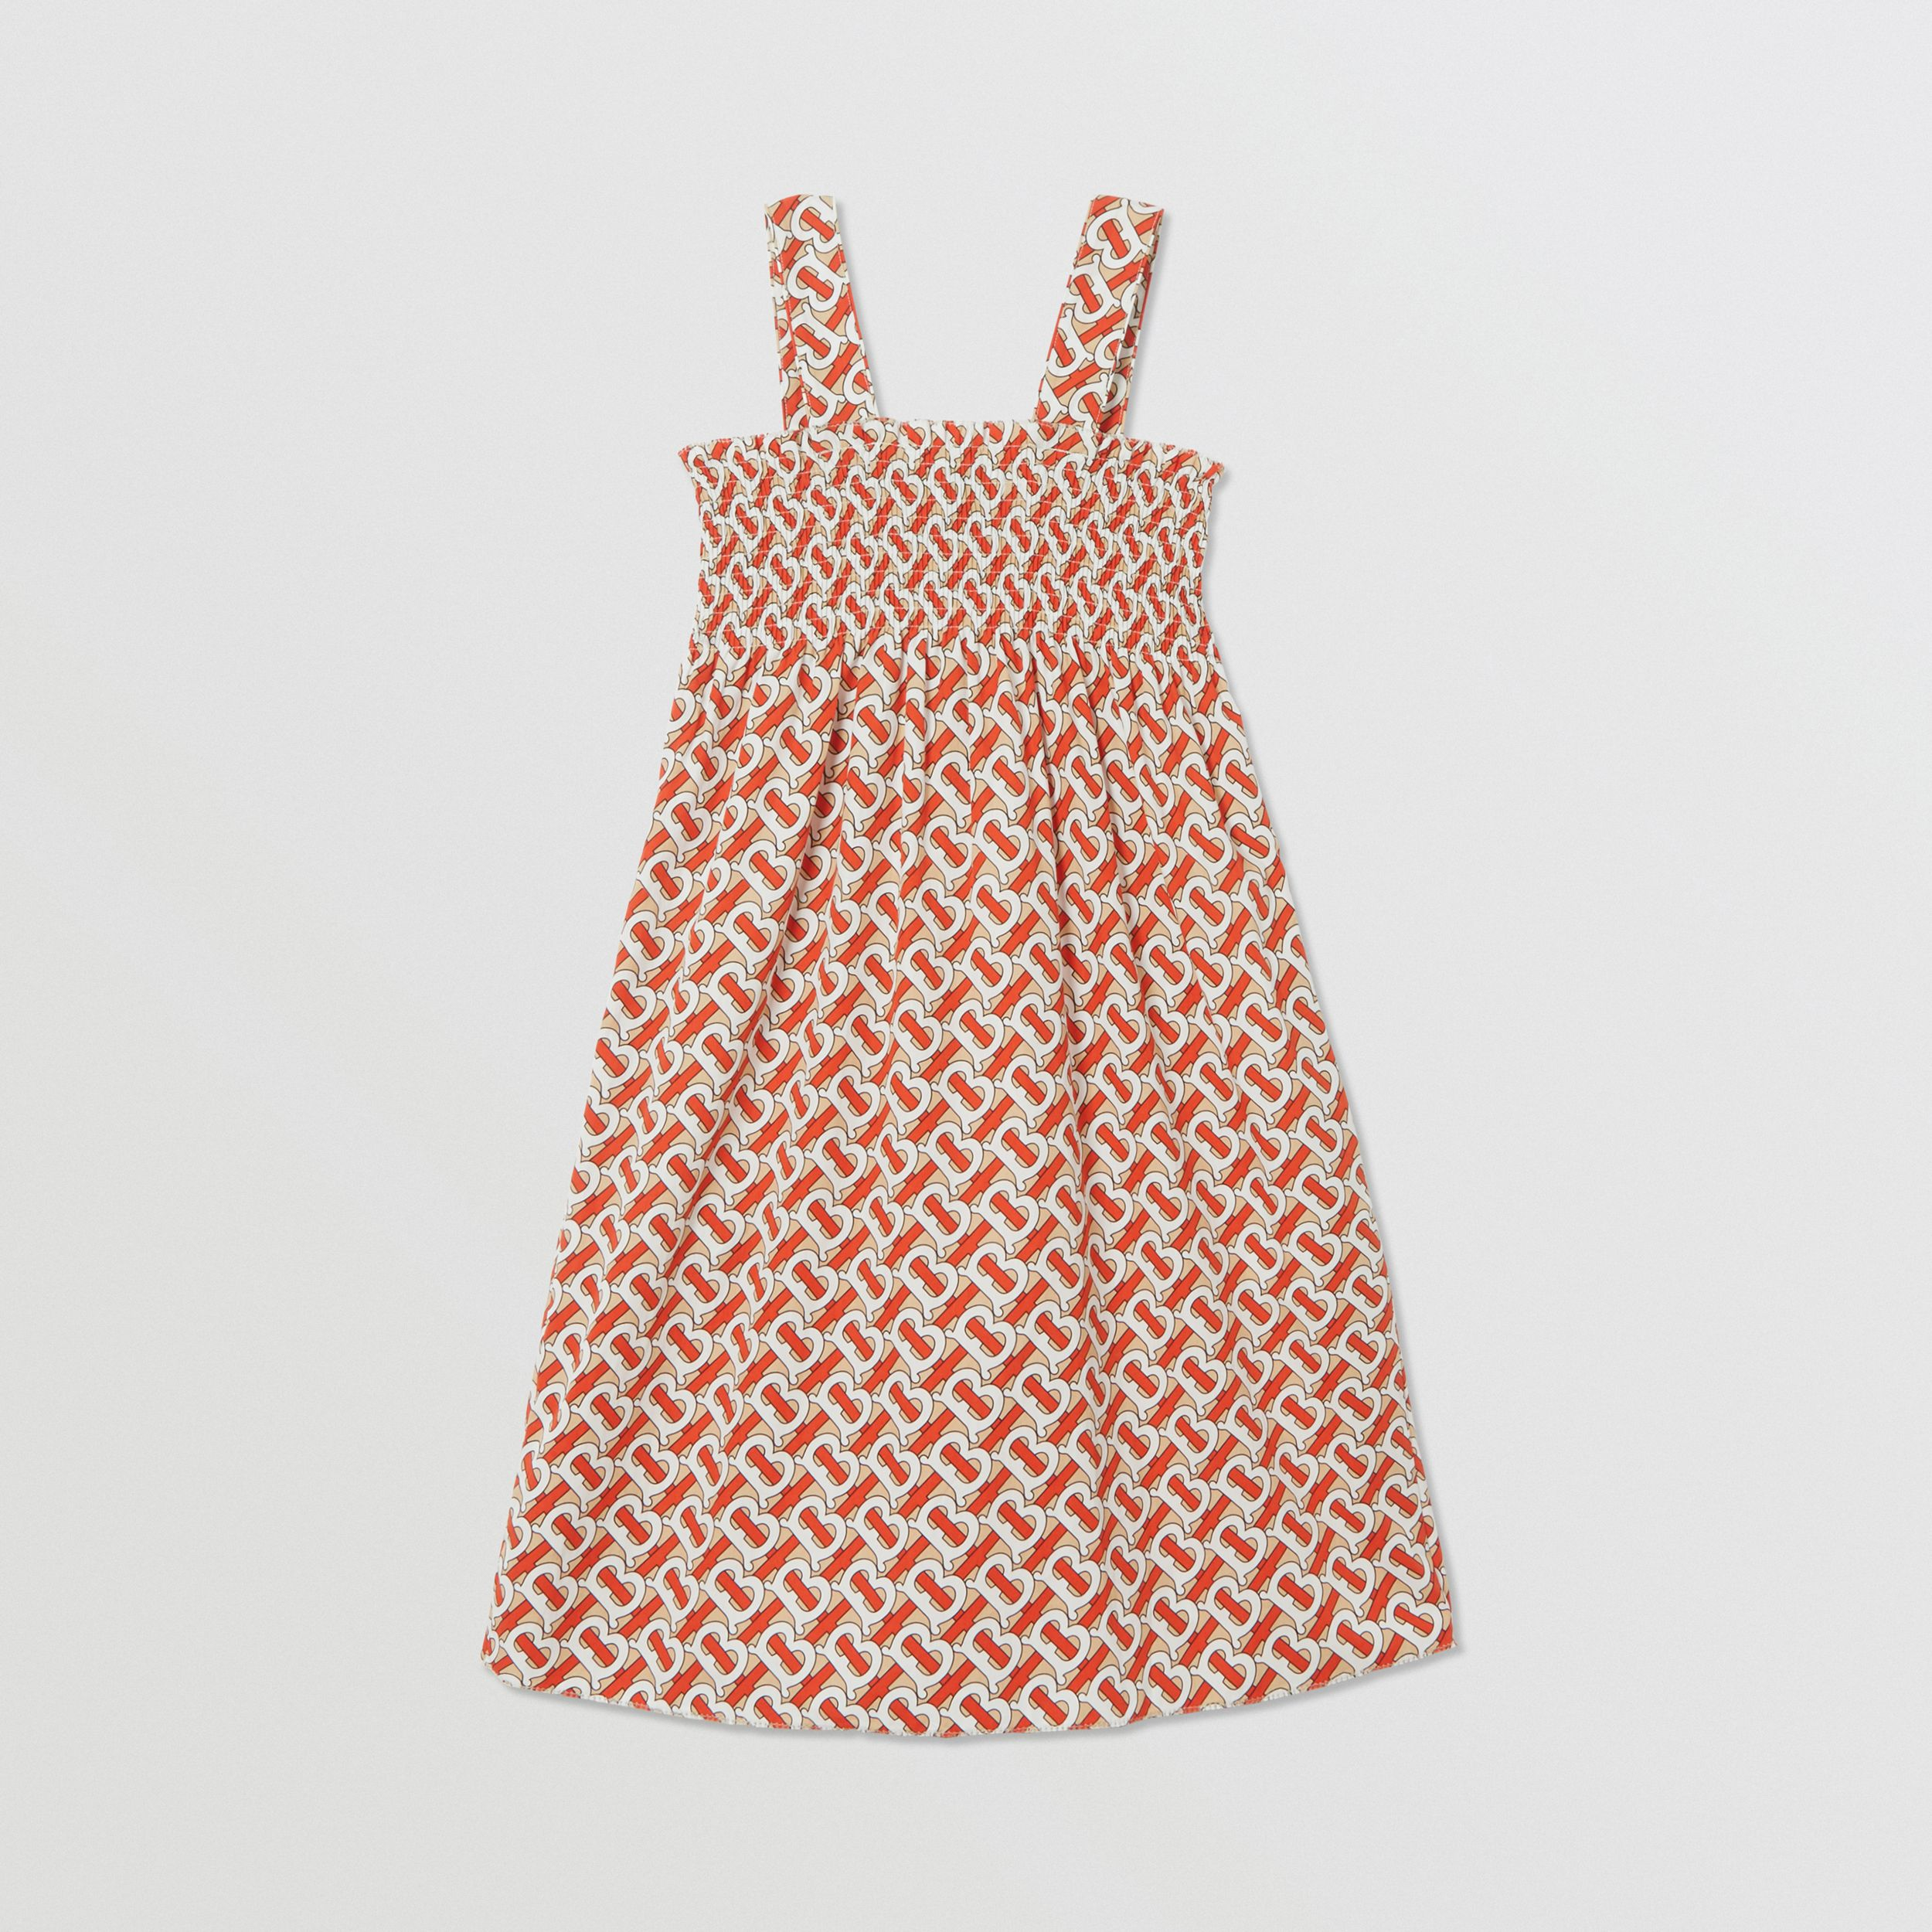 Smocked Monogram Print Cotton Poplin Dress in Vermilion Red | Burberry - 4